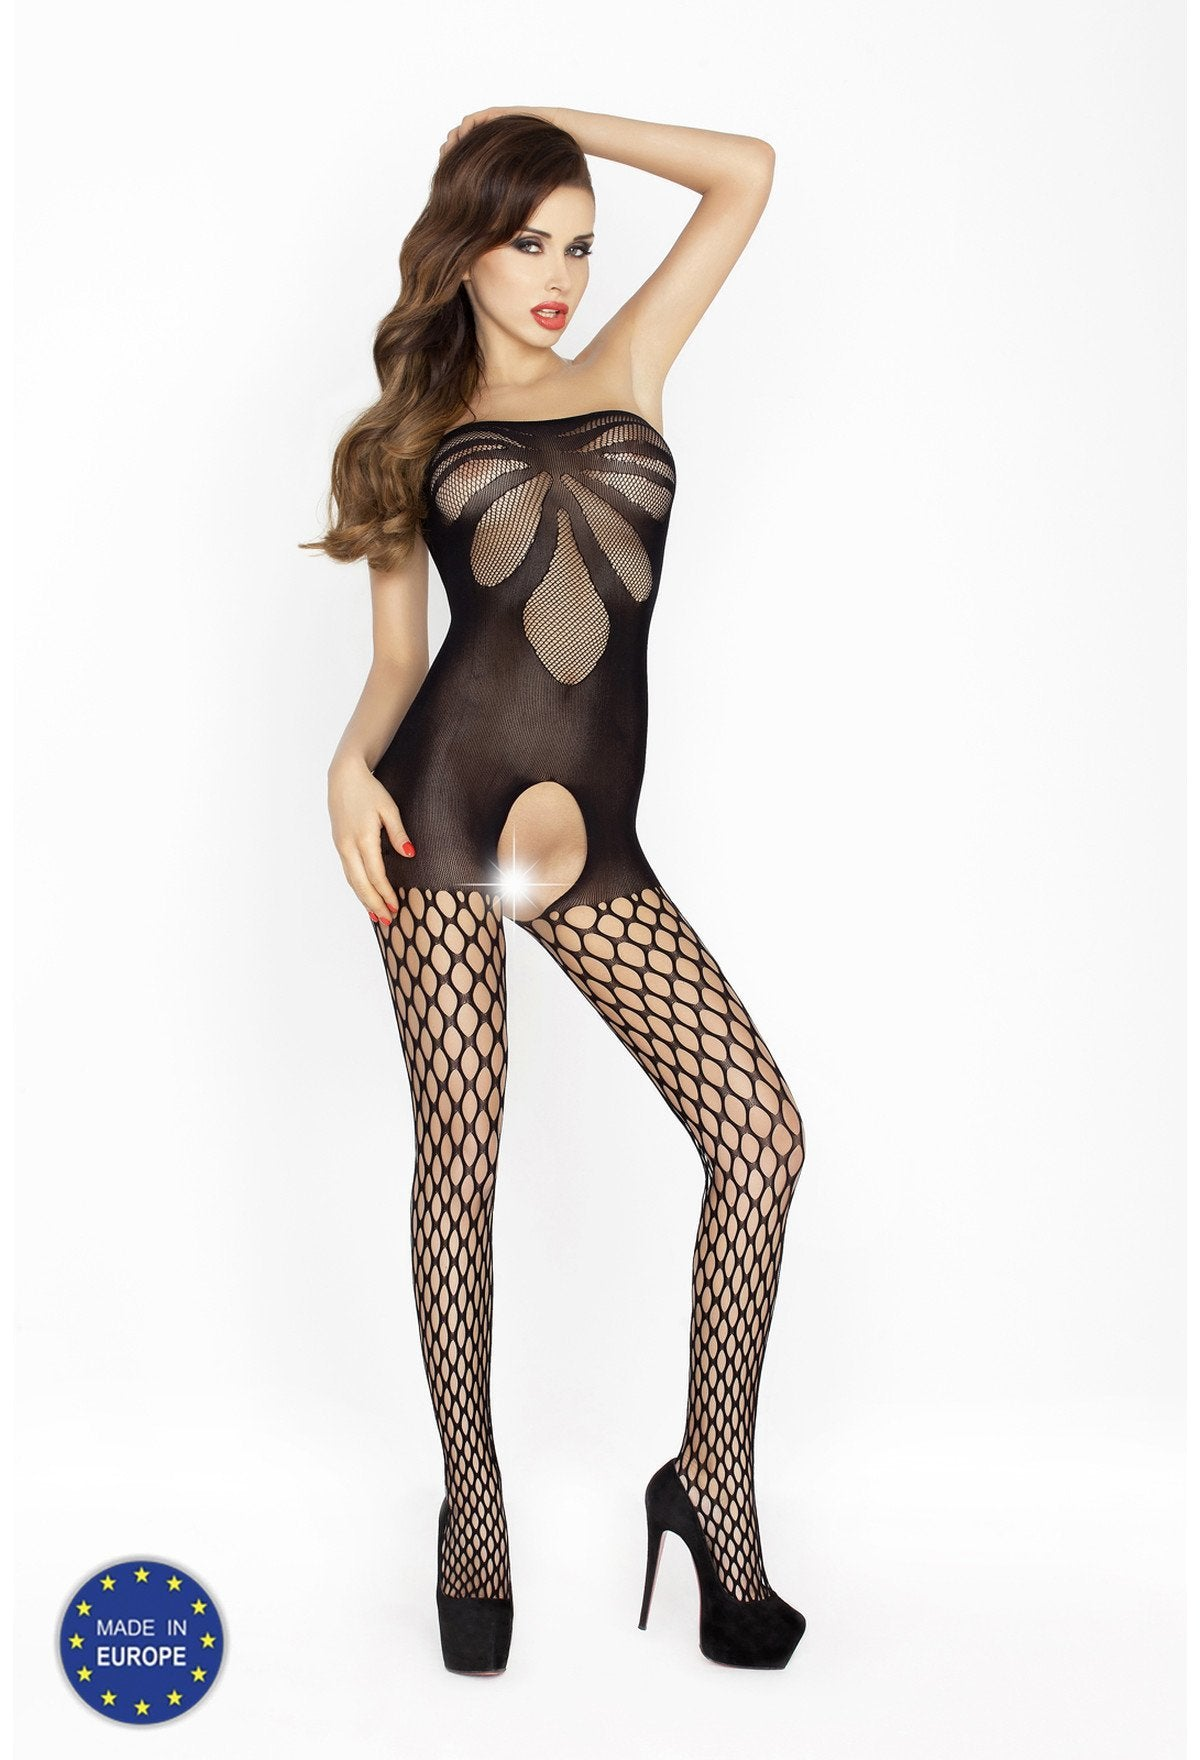 Strapless Crotchless Bodystocking BS021